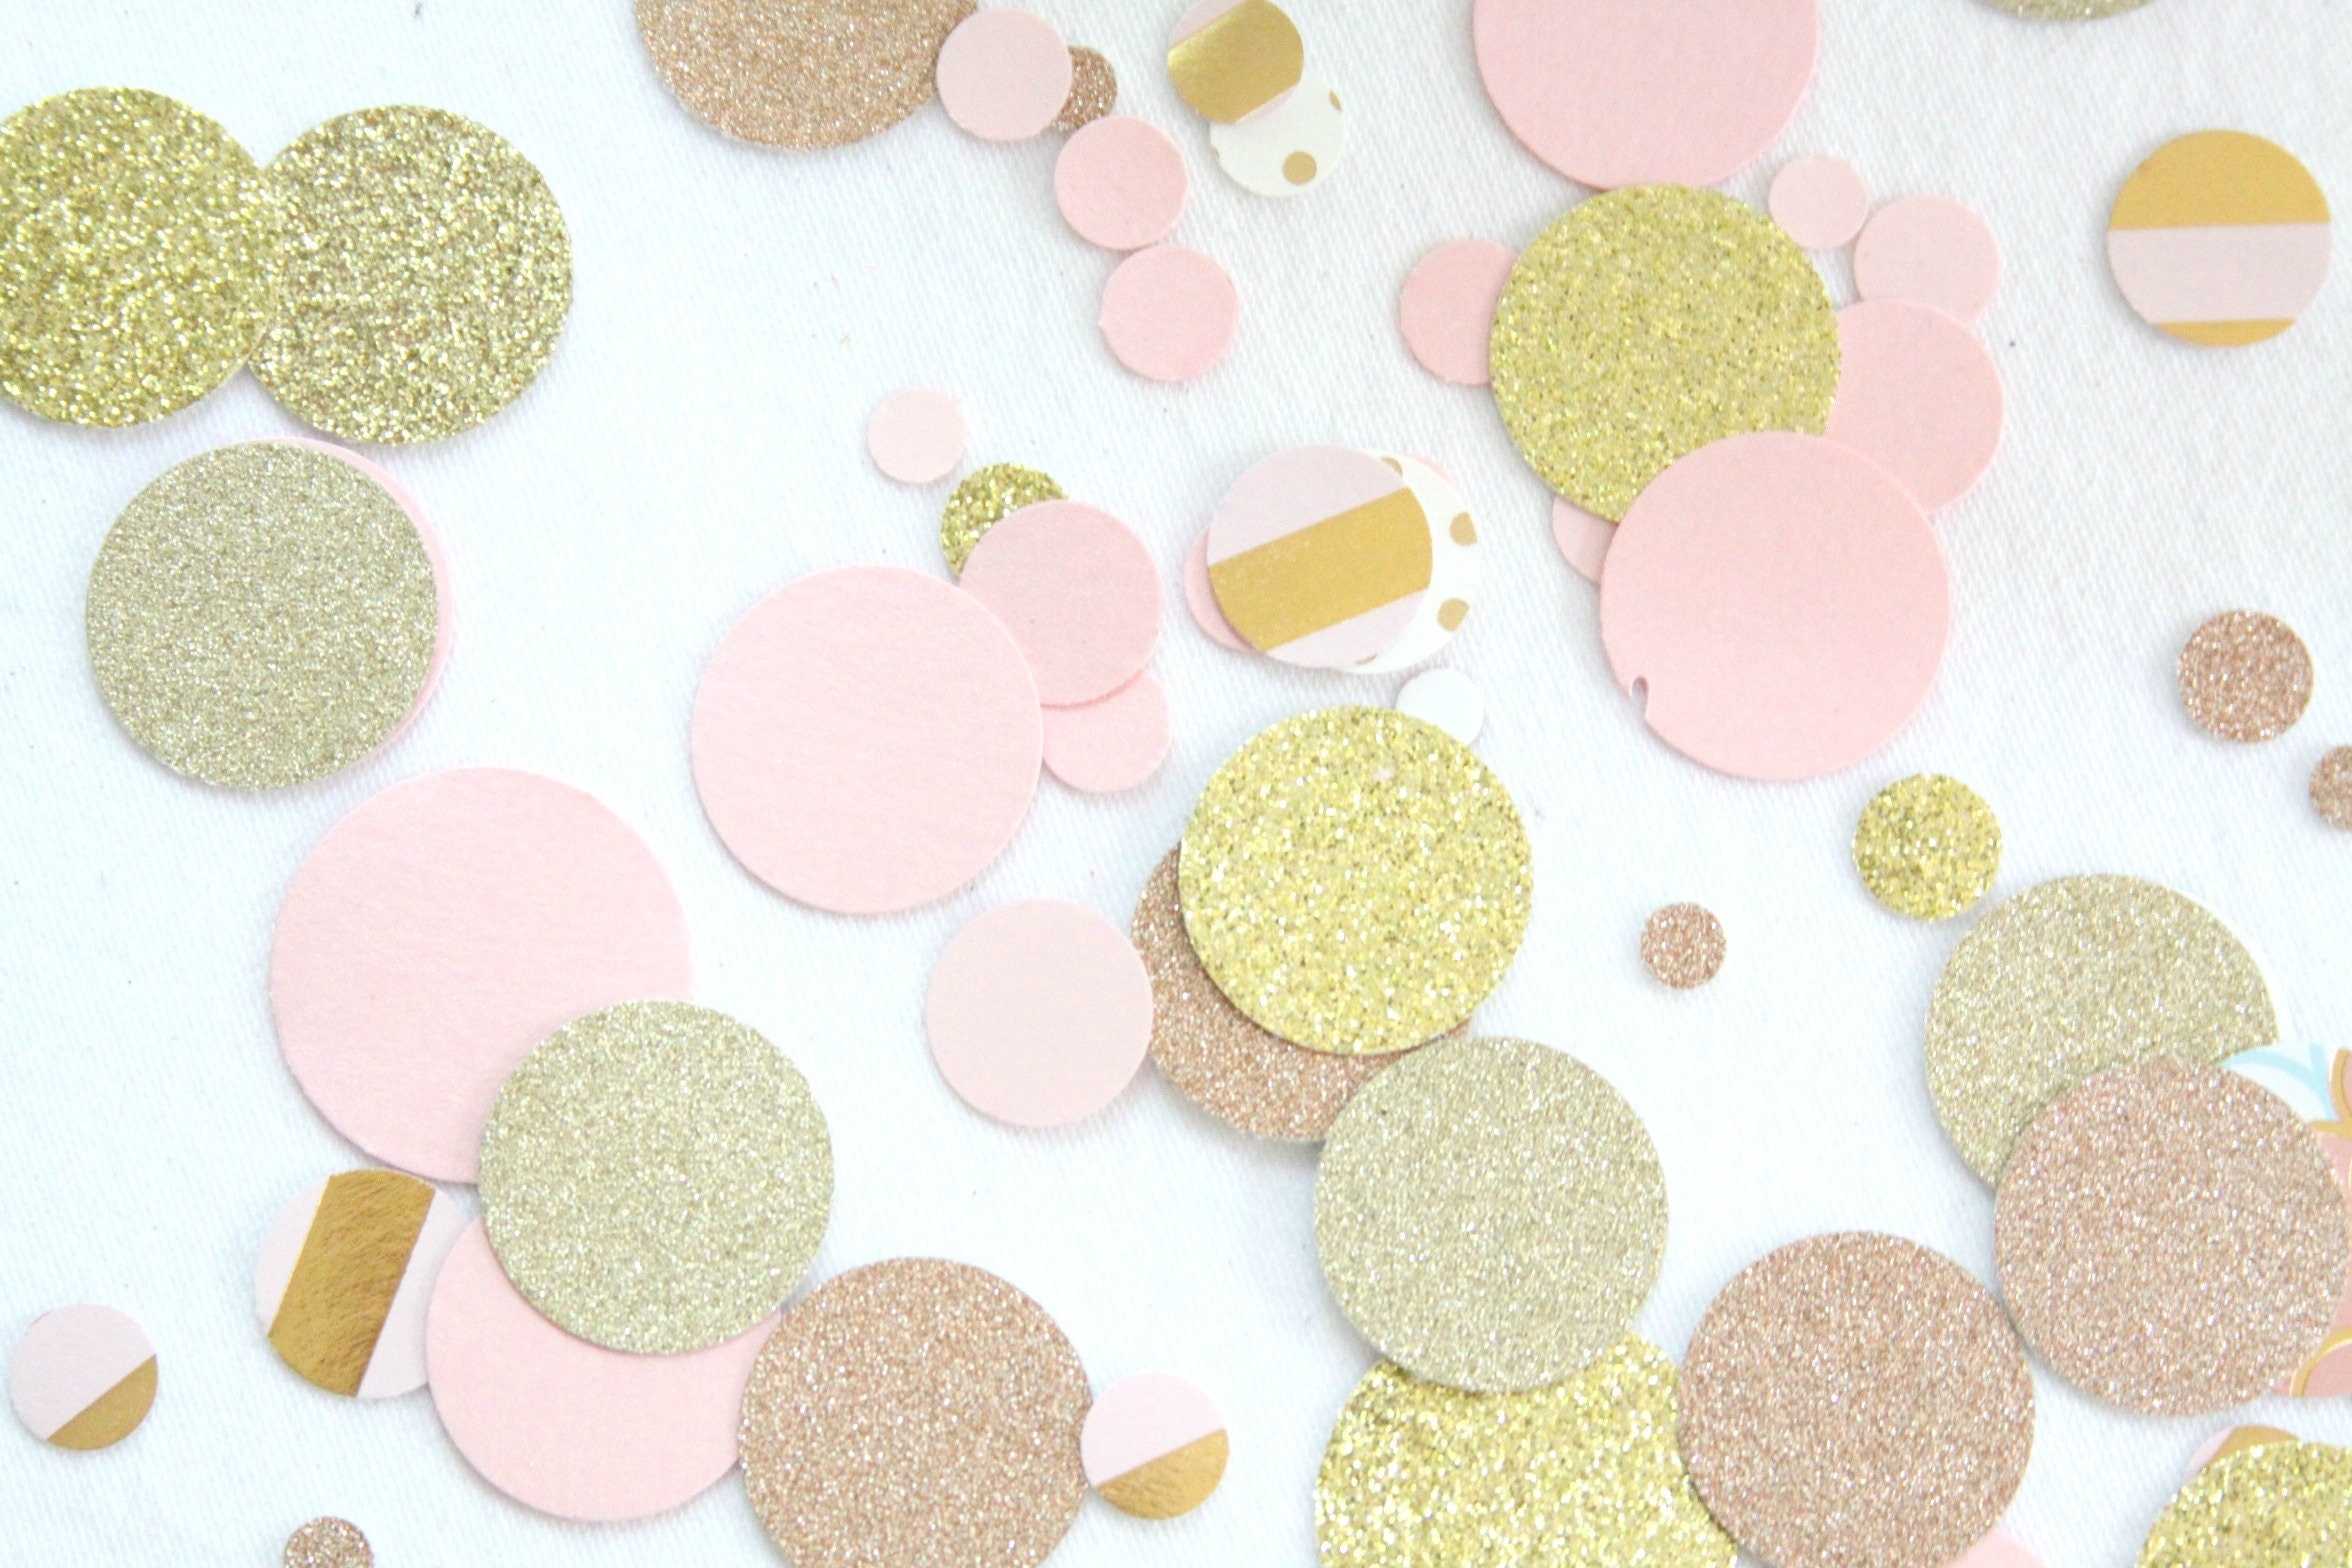 rose gold confetti pink and gold baby shower decorations pink and gold bridal shower decor rose gold wedding rose gold first birthday